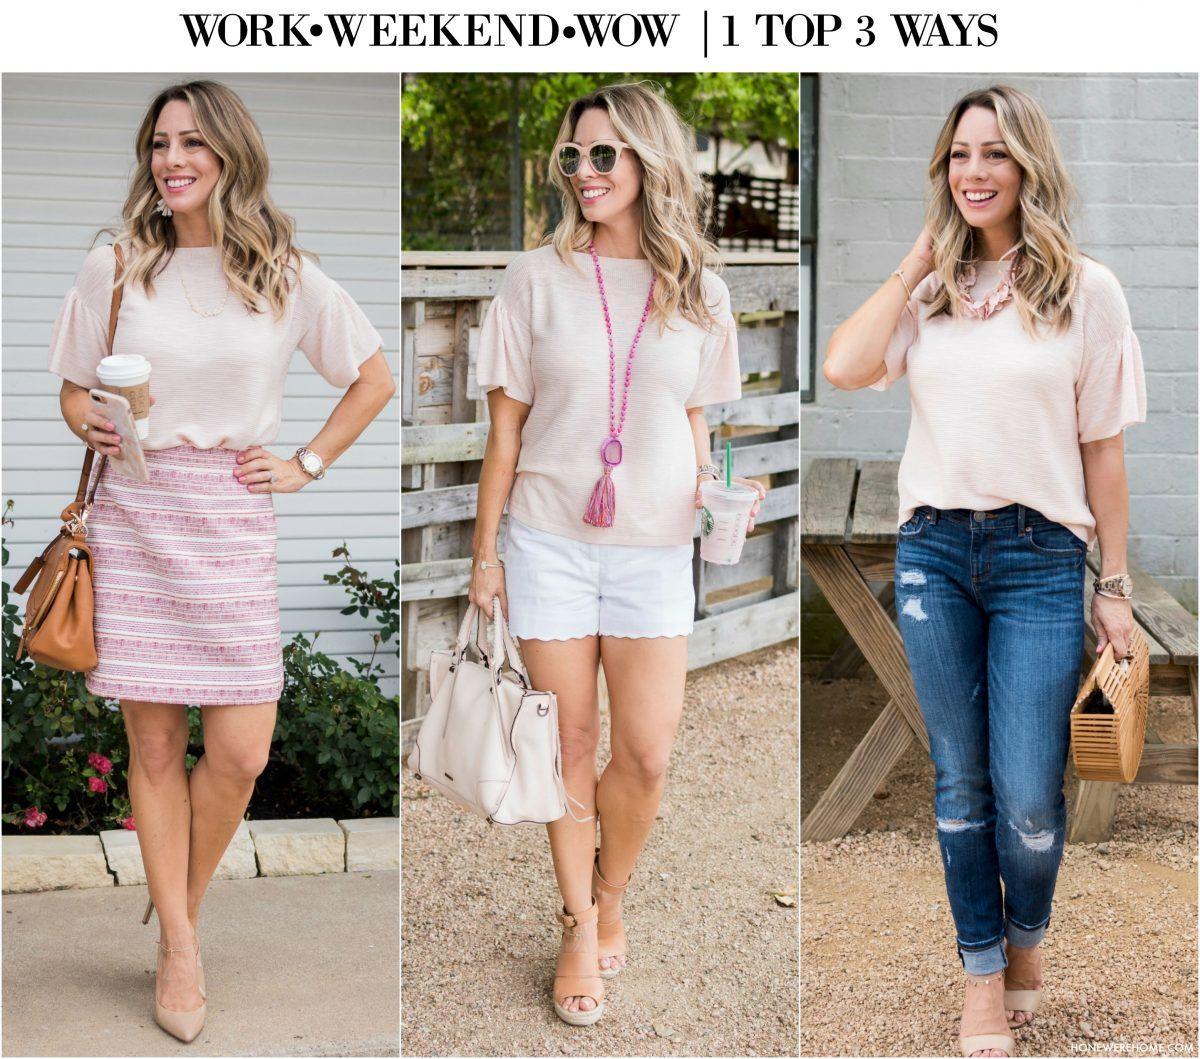 ba3a09bf3cca Work Weekend Wow - Pink Top 3 Ways Trendy Outfits